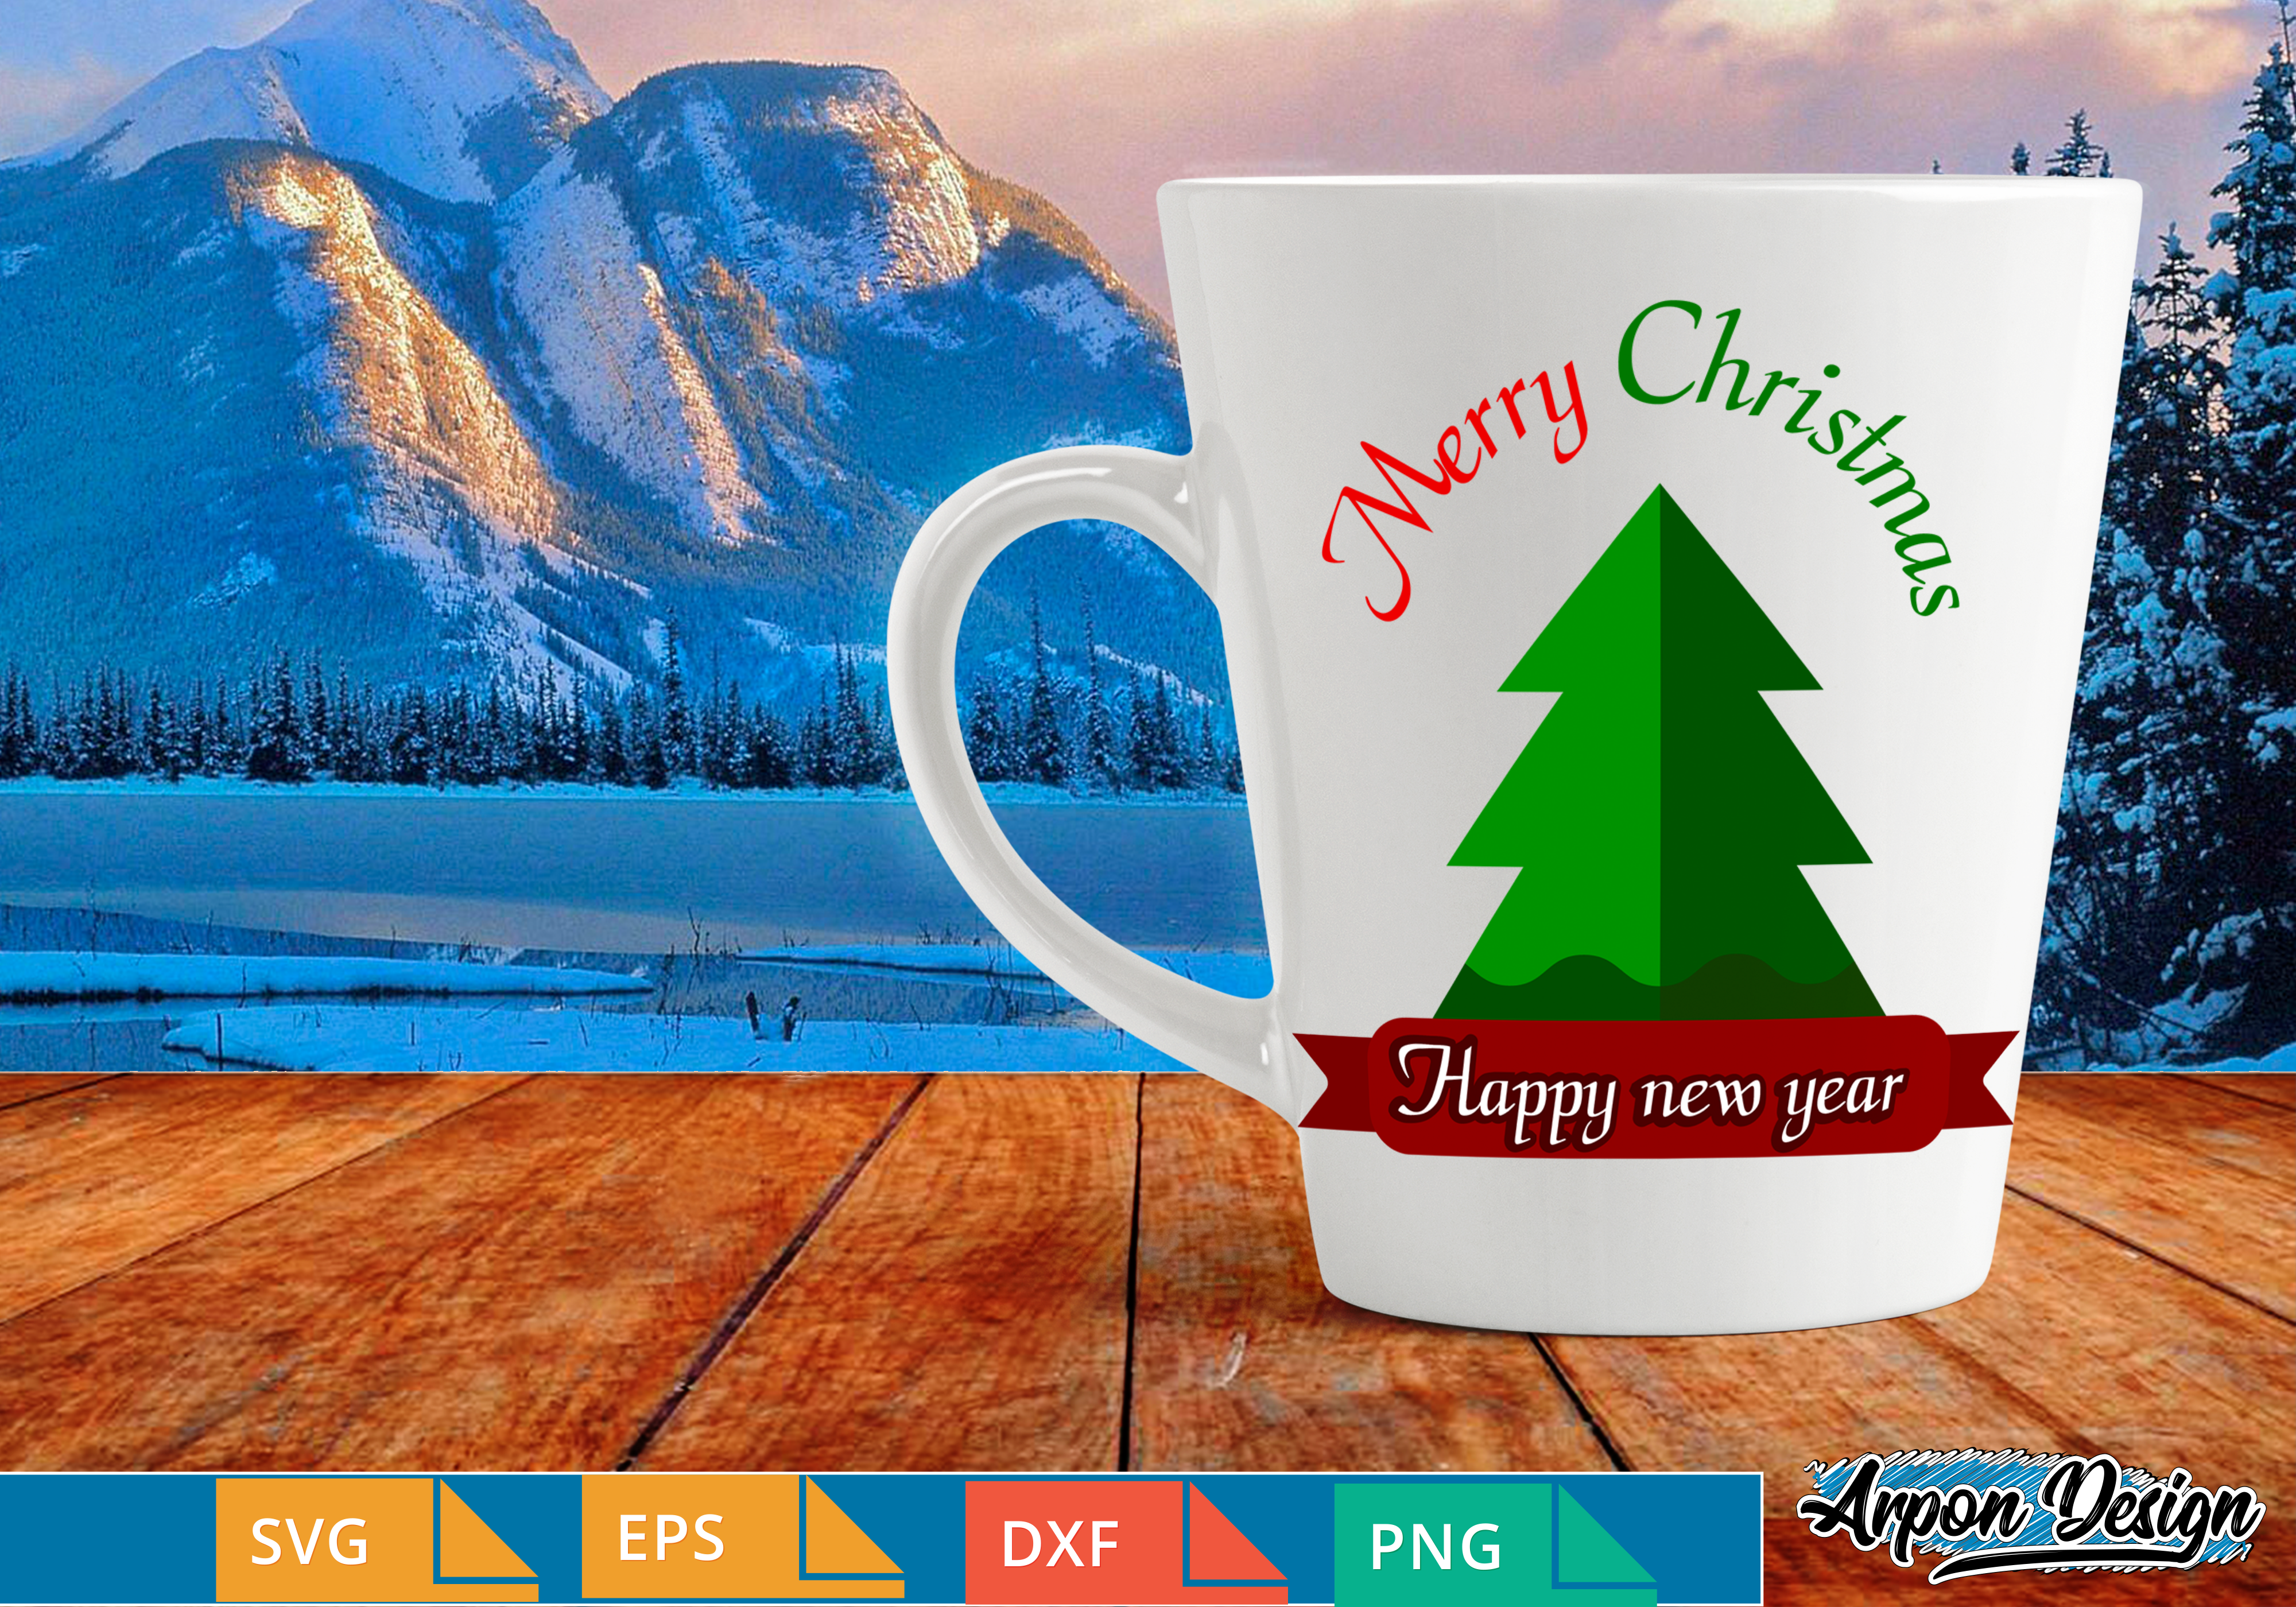 Download Free Merry Christmas A Happy New Year Graphic By Arpondesign for Cricut Explore, Silhouette and other cutting machines.